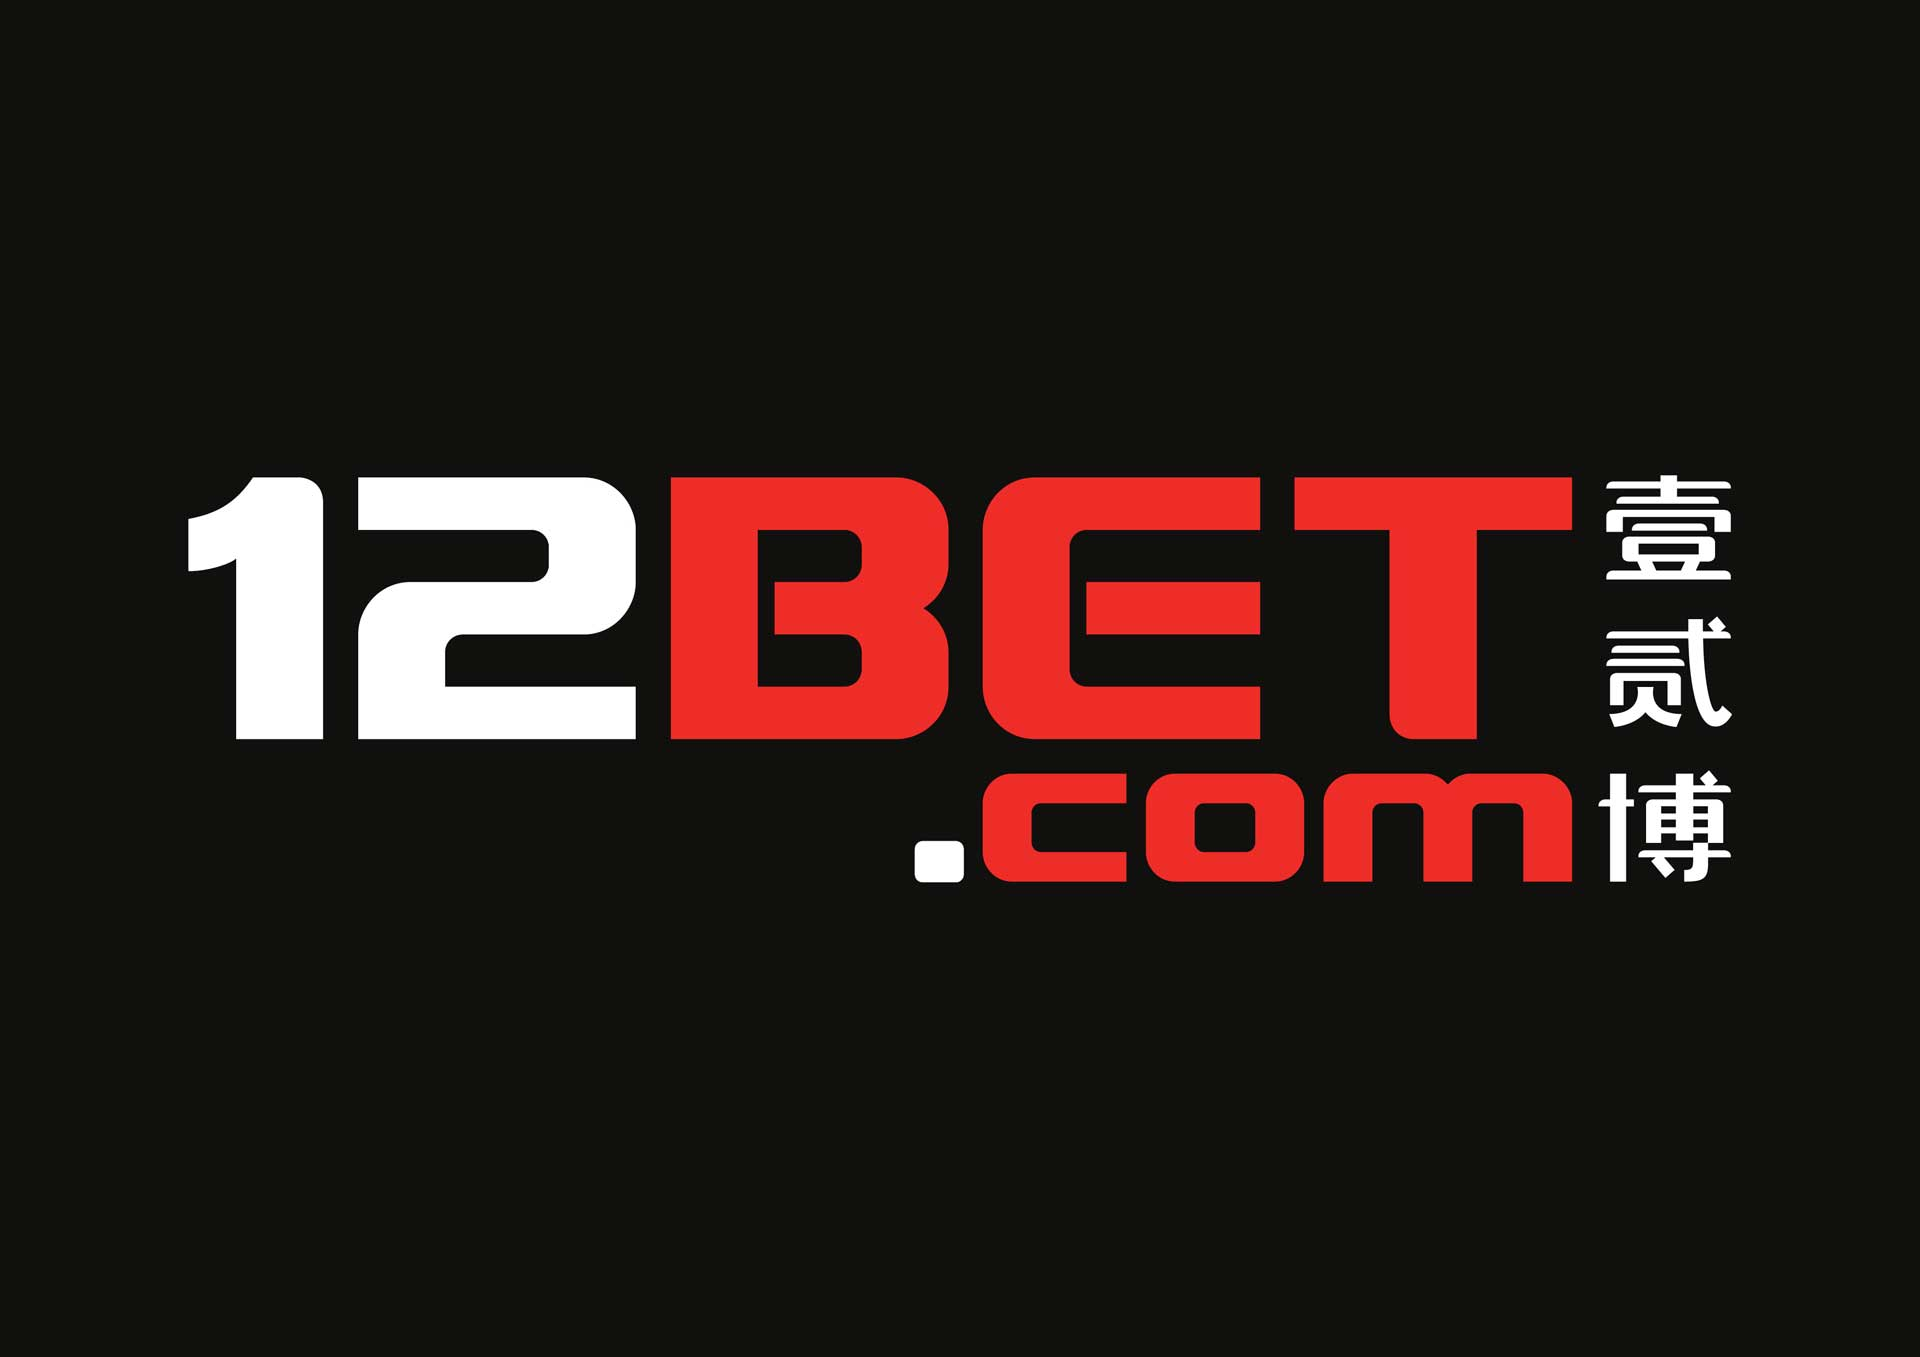 12bet-sports-betting-advertising-1